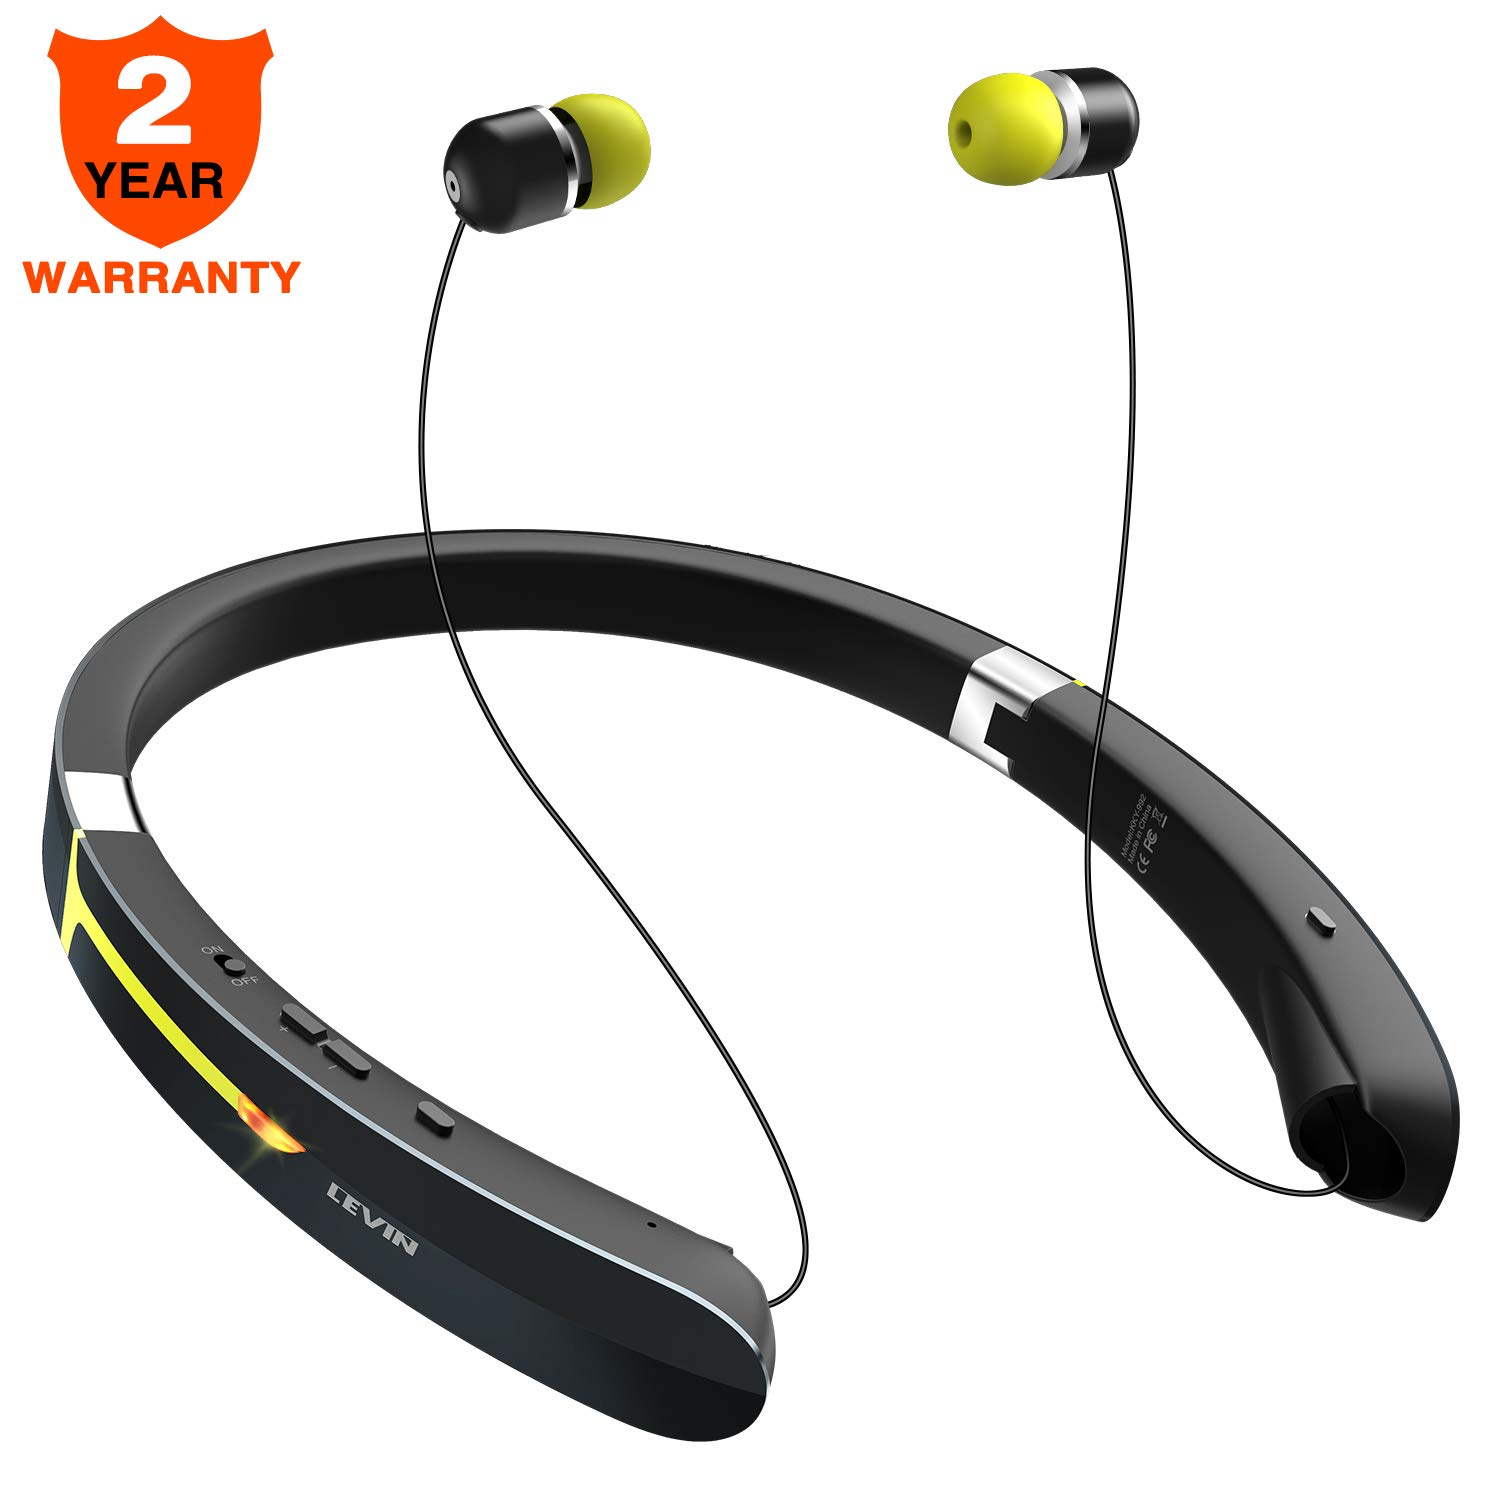 5b650285d2f Bluetooth Headphone Wireless Neckband Headset - Lightweight Sweatproof Sport  Earphones w/Mic Call Vibrate Alert, Retractable Earbuds for Android  Cellphone ...